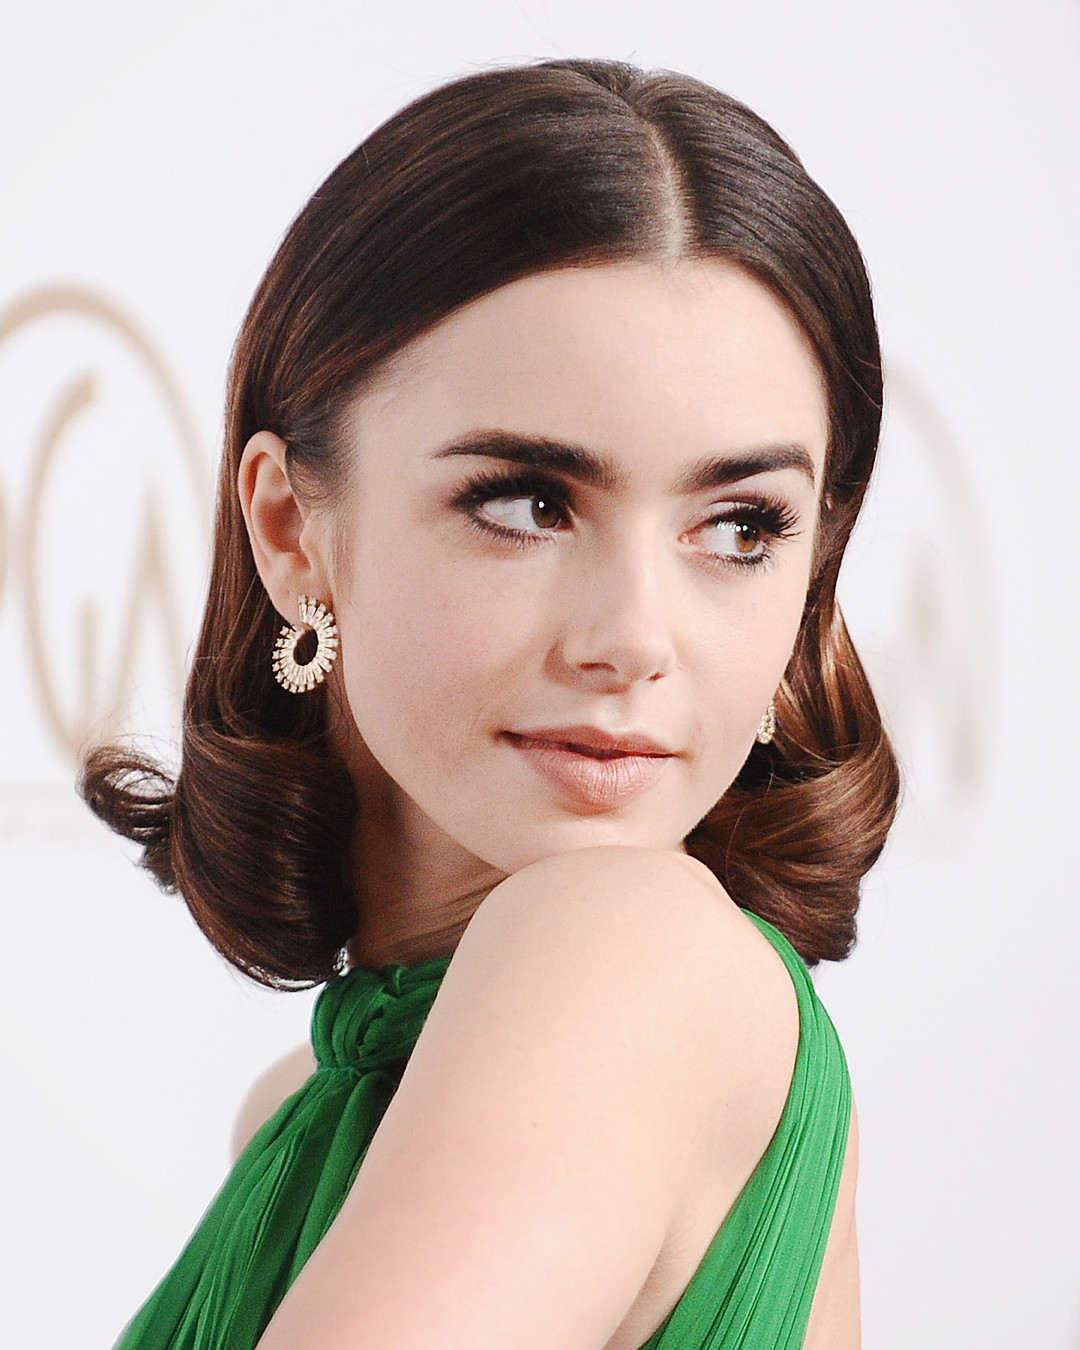 ESC: Lily Collins, Brows